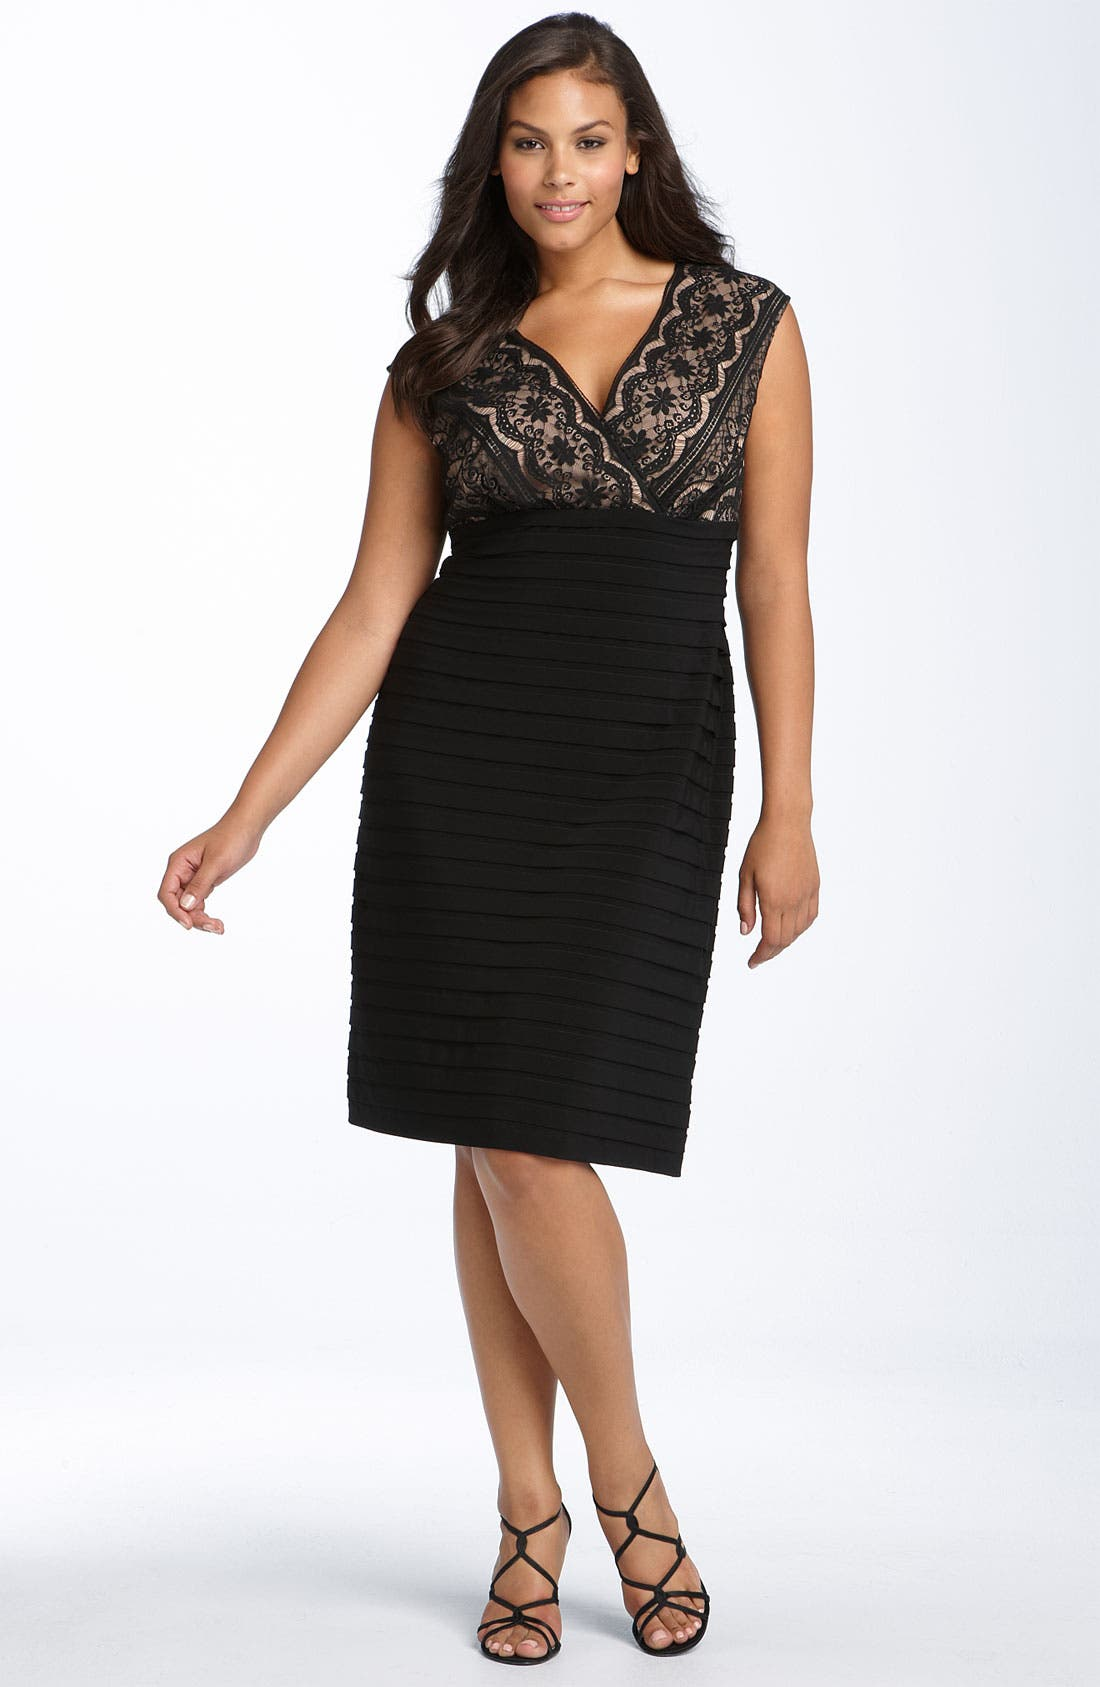 Main Image - Adrianna Papell Lace Bodice Banded Dress (Plus Size)